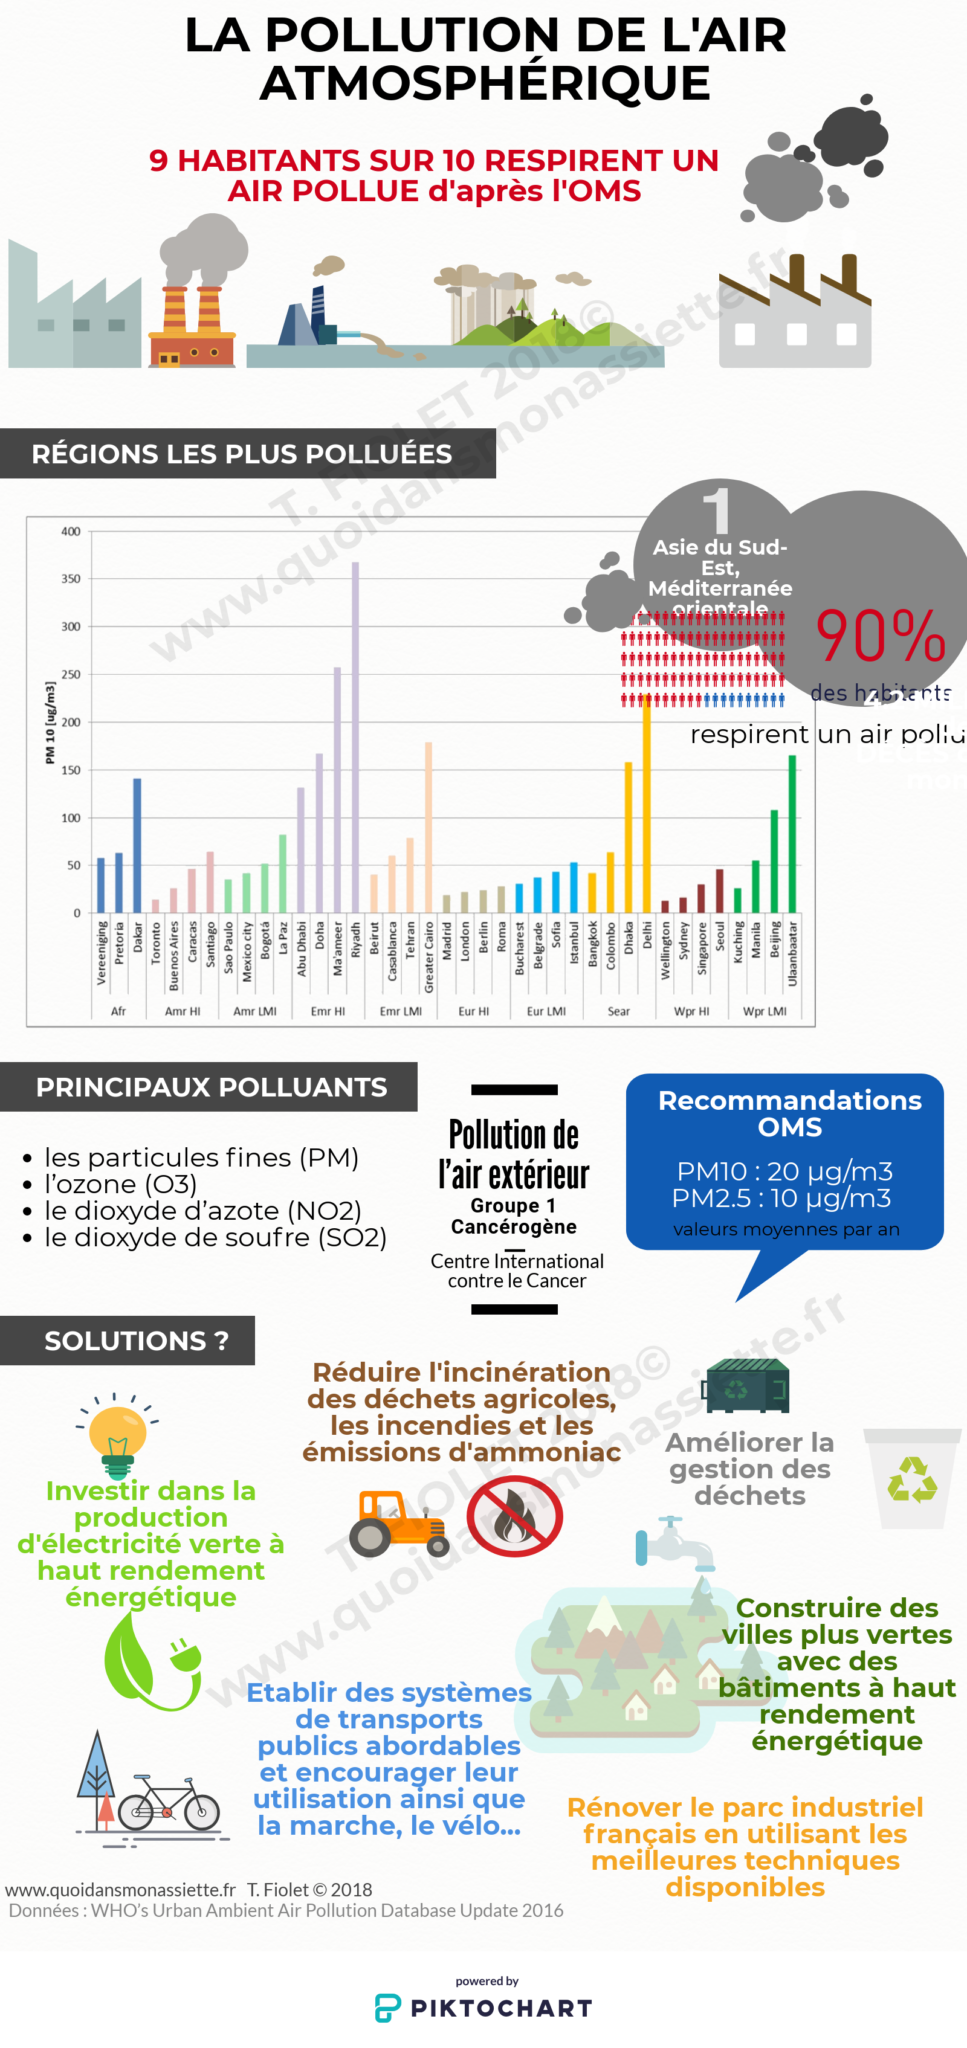 Infographie Pollution air atmospherique particules fines cancer F